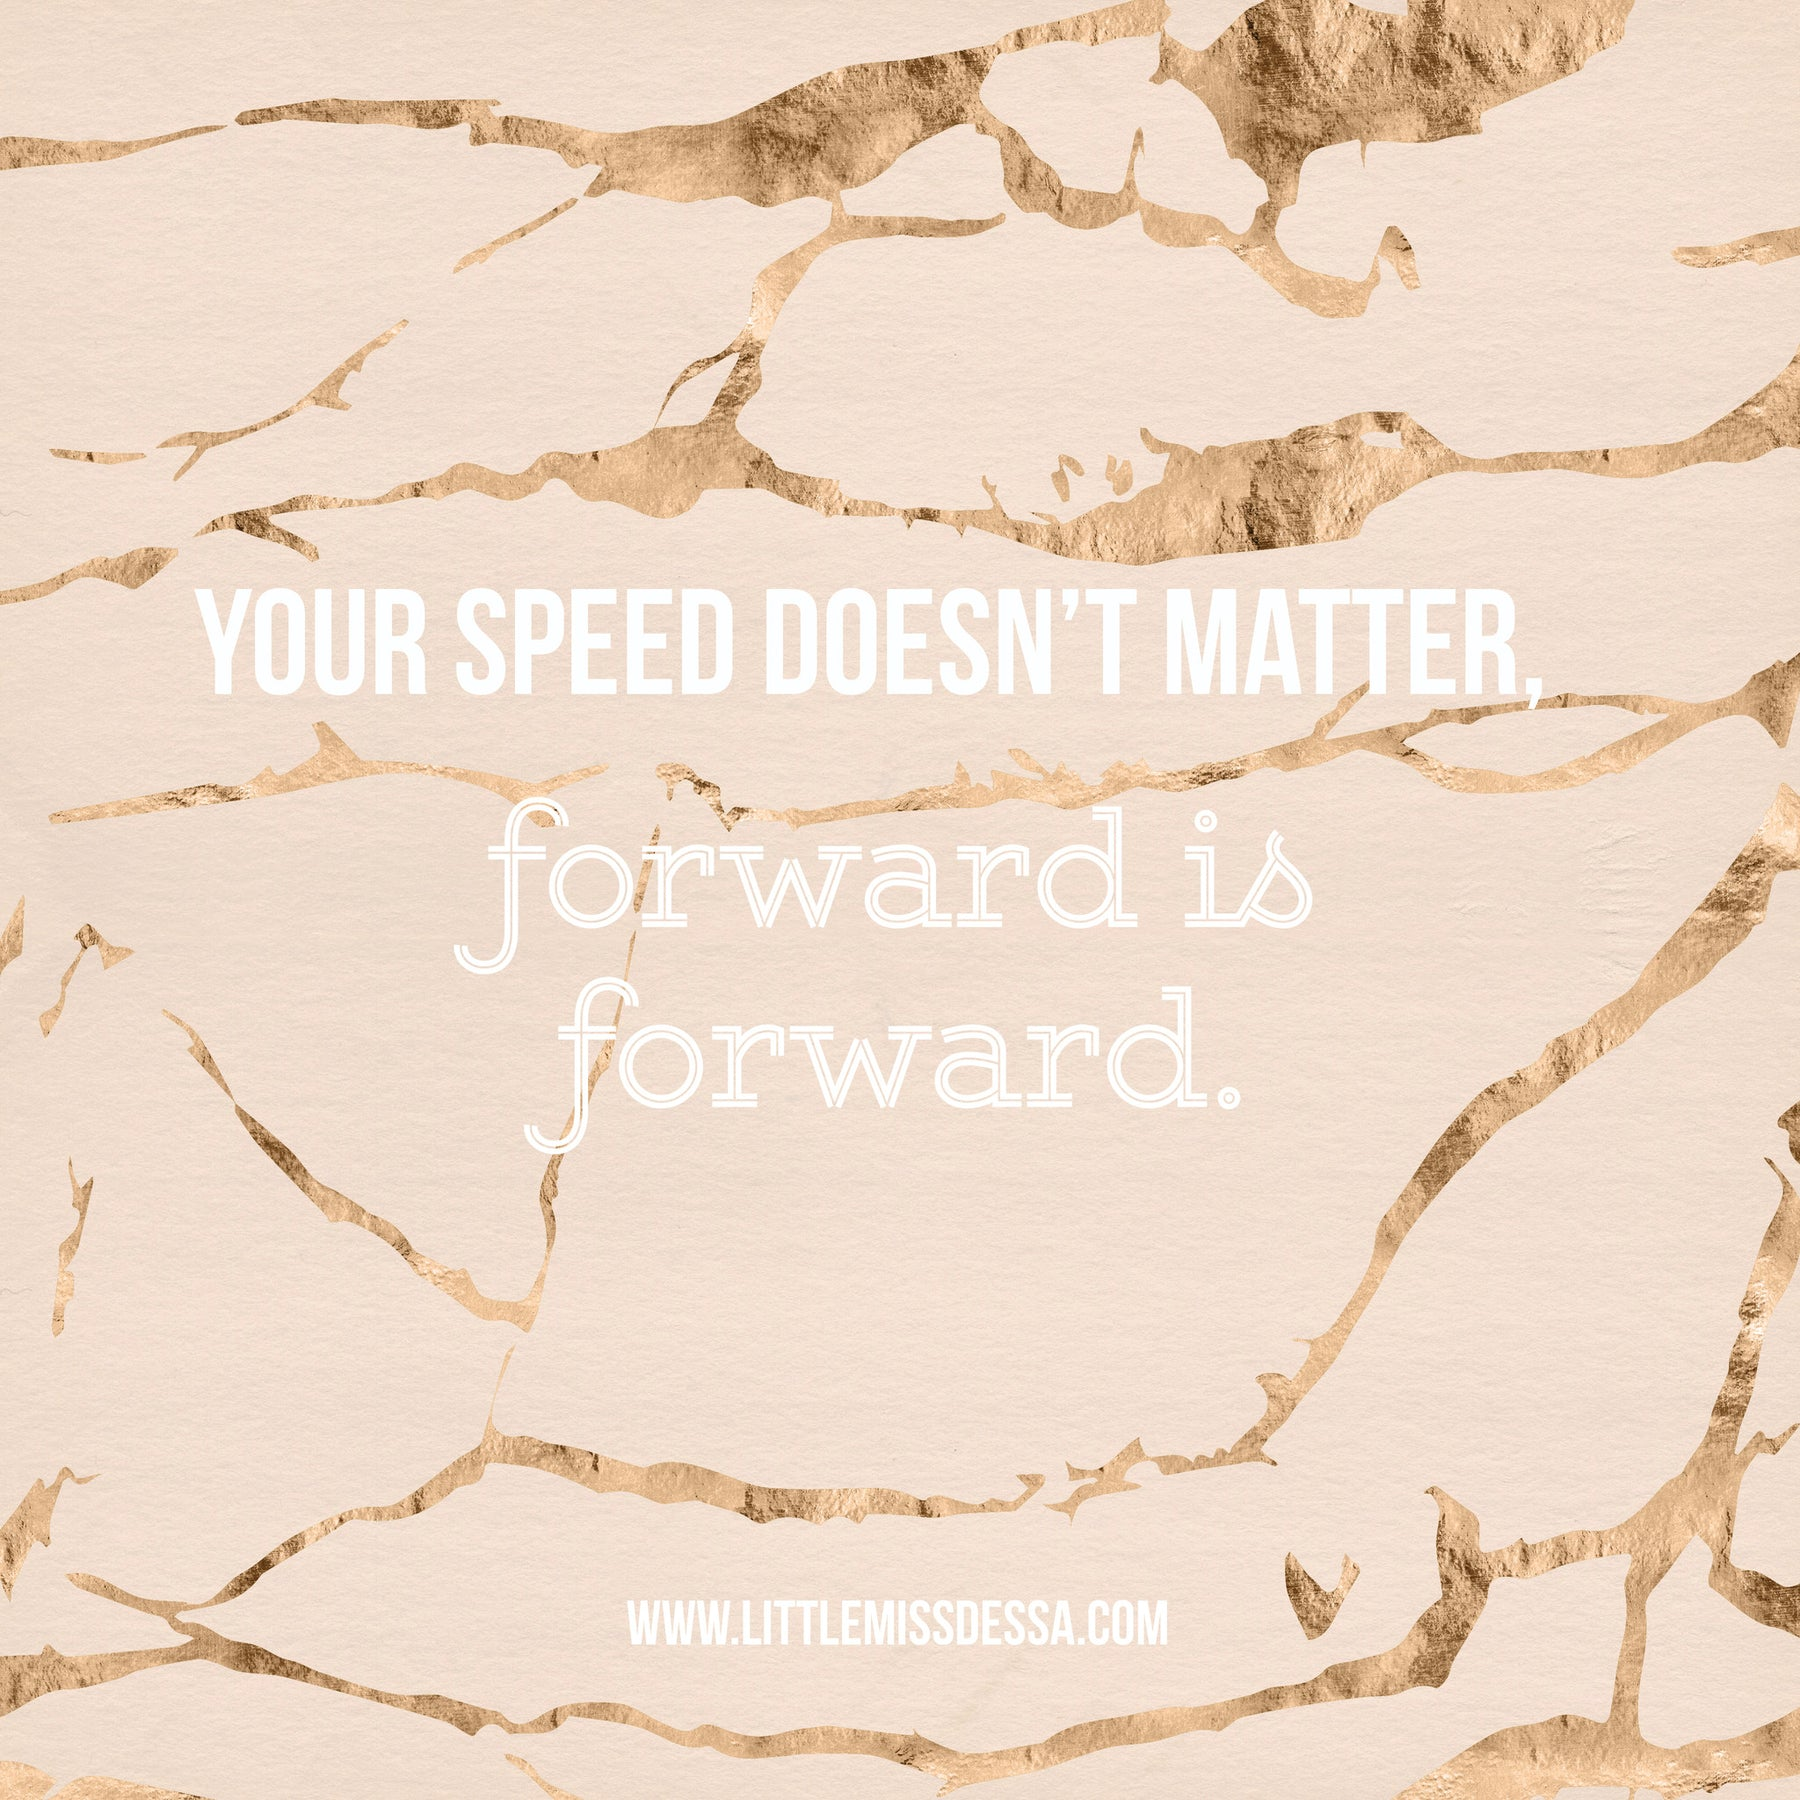 Motivation: Forward, is forward.